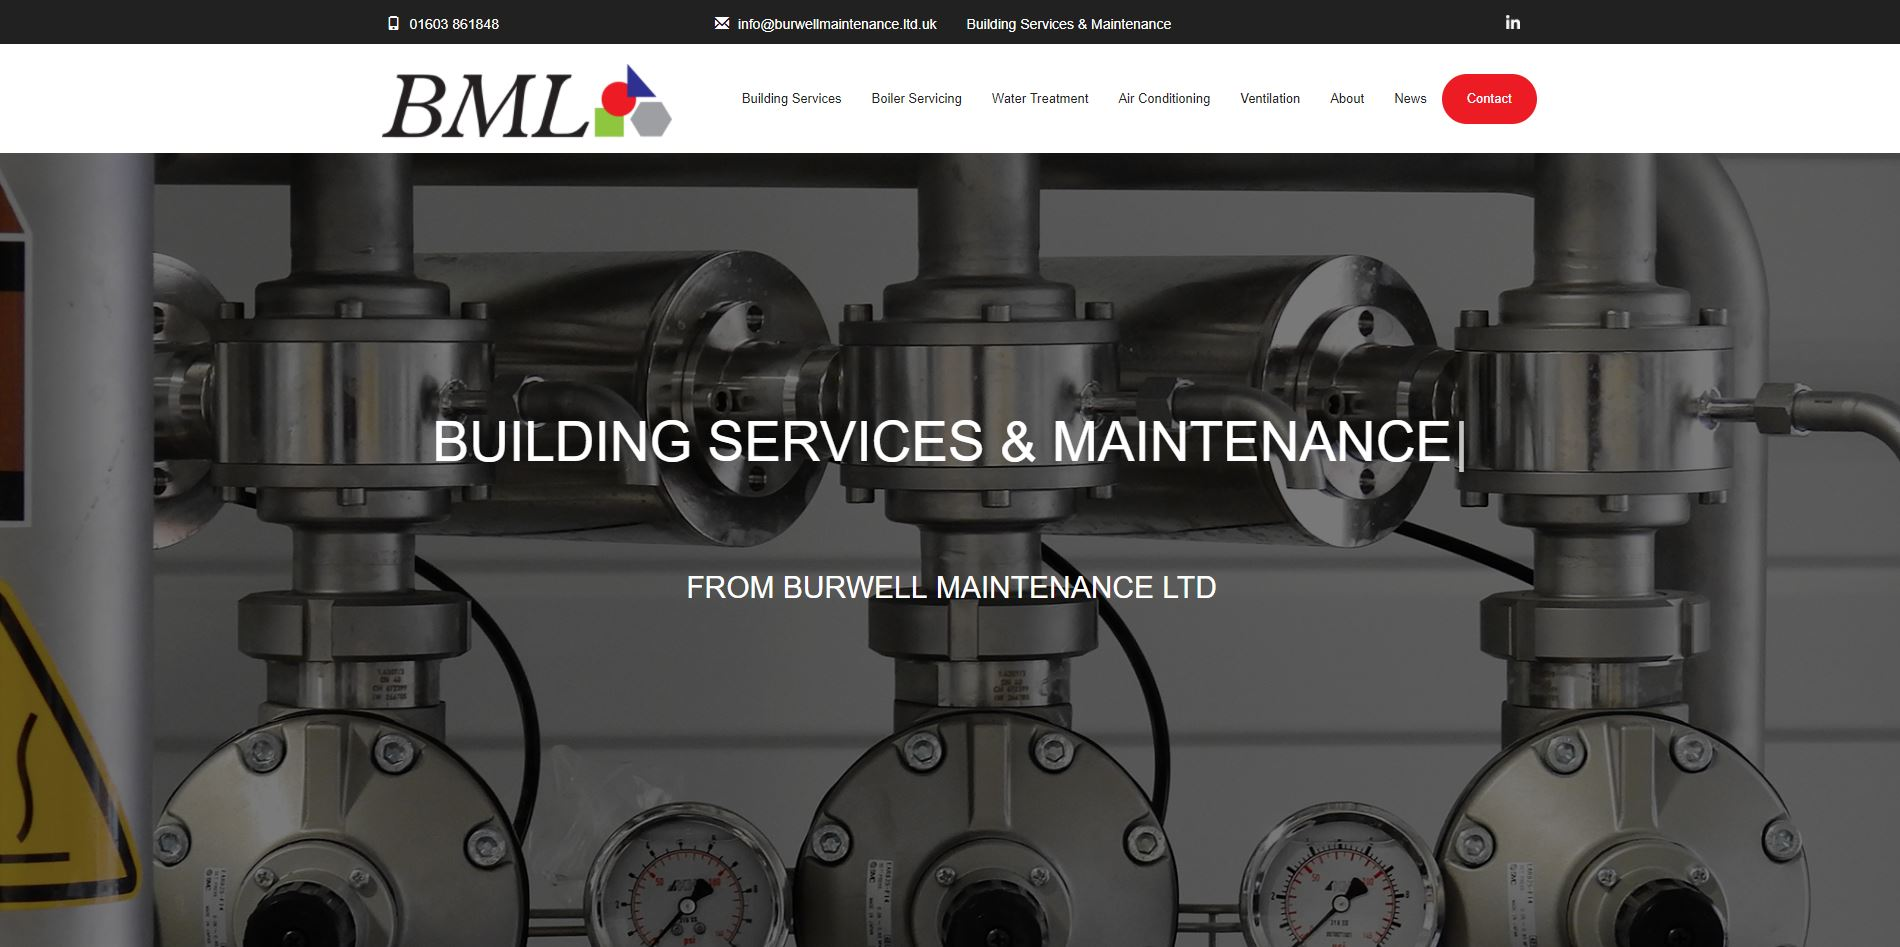 This week Burwell Maintenance Limited's new website has gone live.